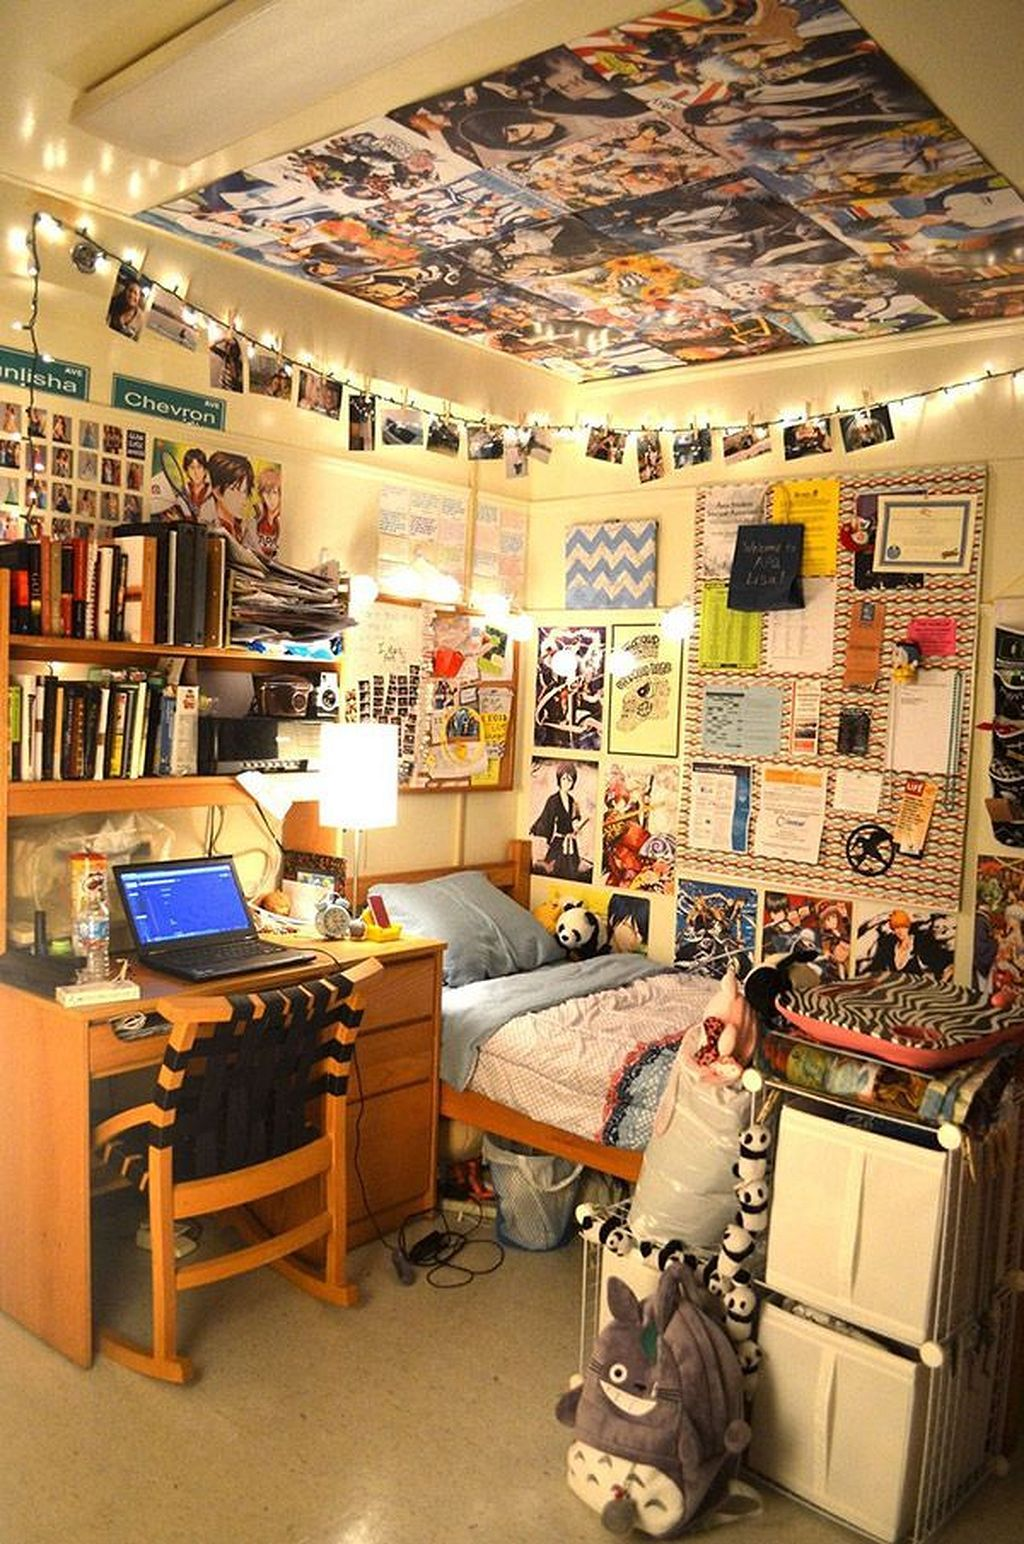 Incredible and Cute Dorm Room Decorating Ideas | Dorm, Dorm room and ...